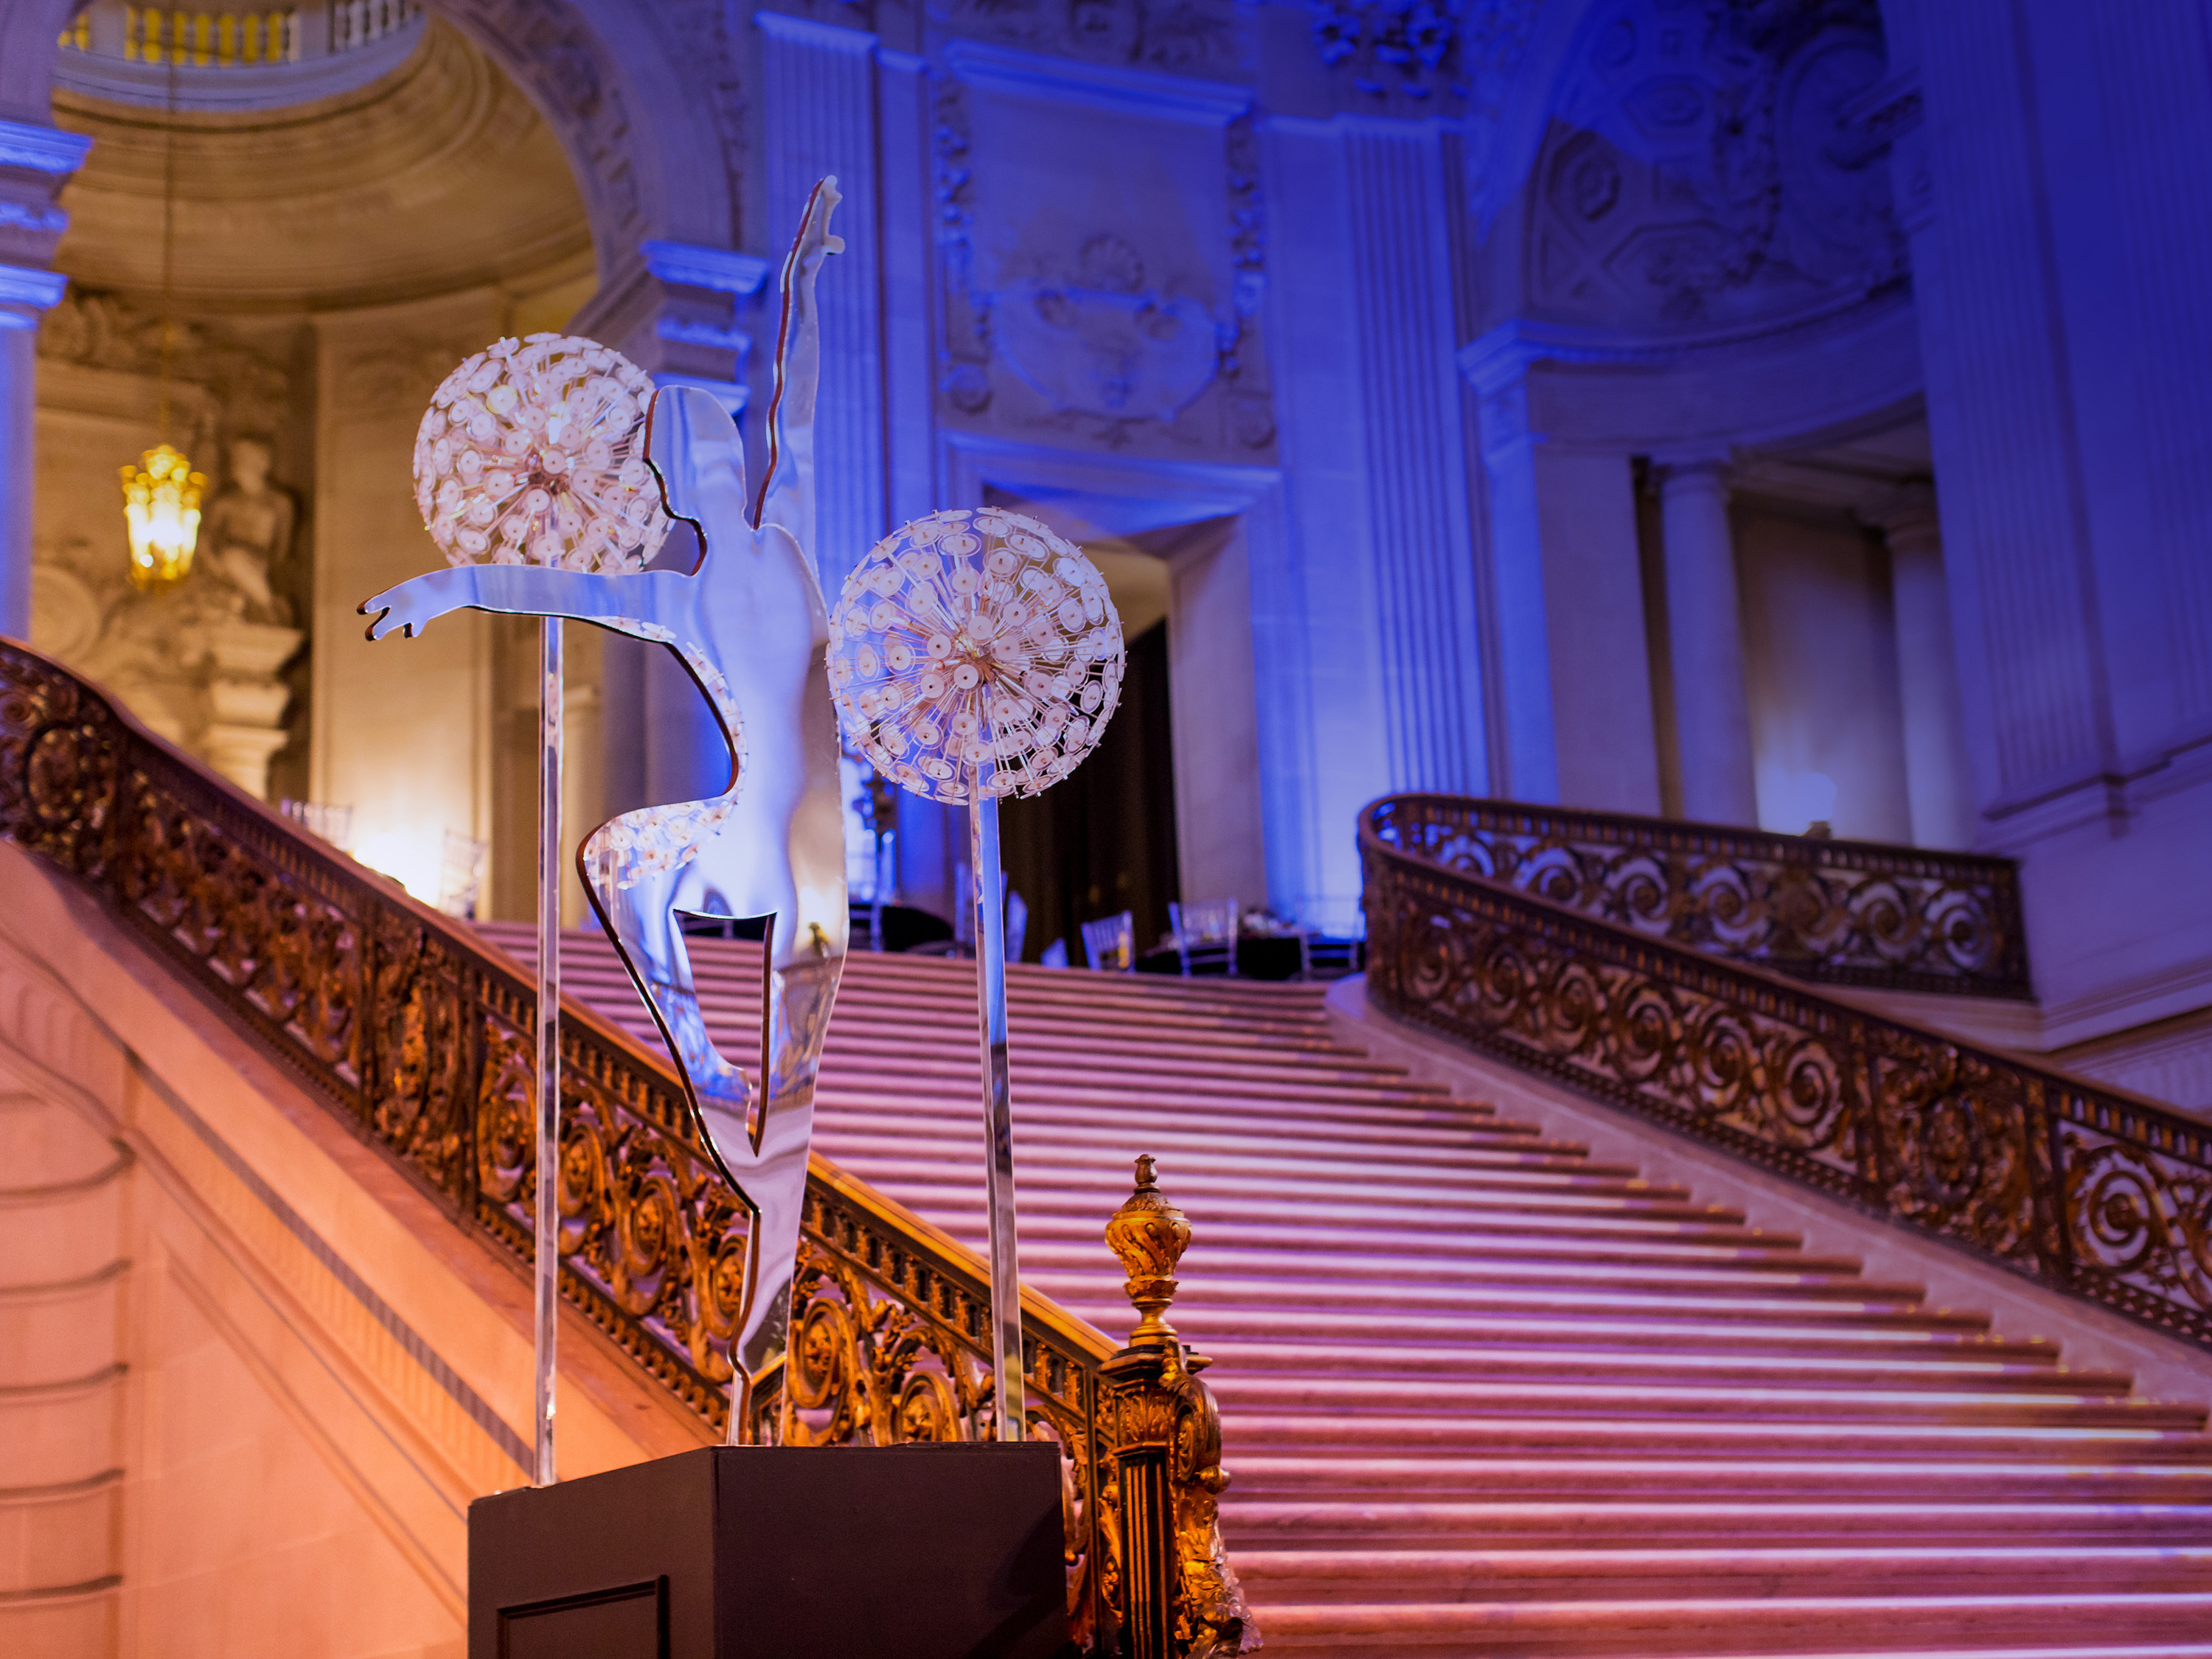 4. SF Ballet Gala Decor